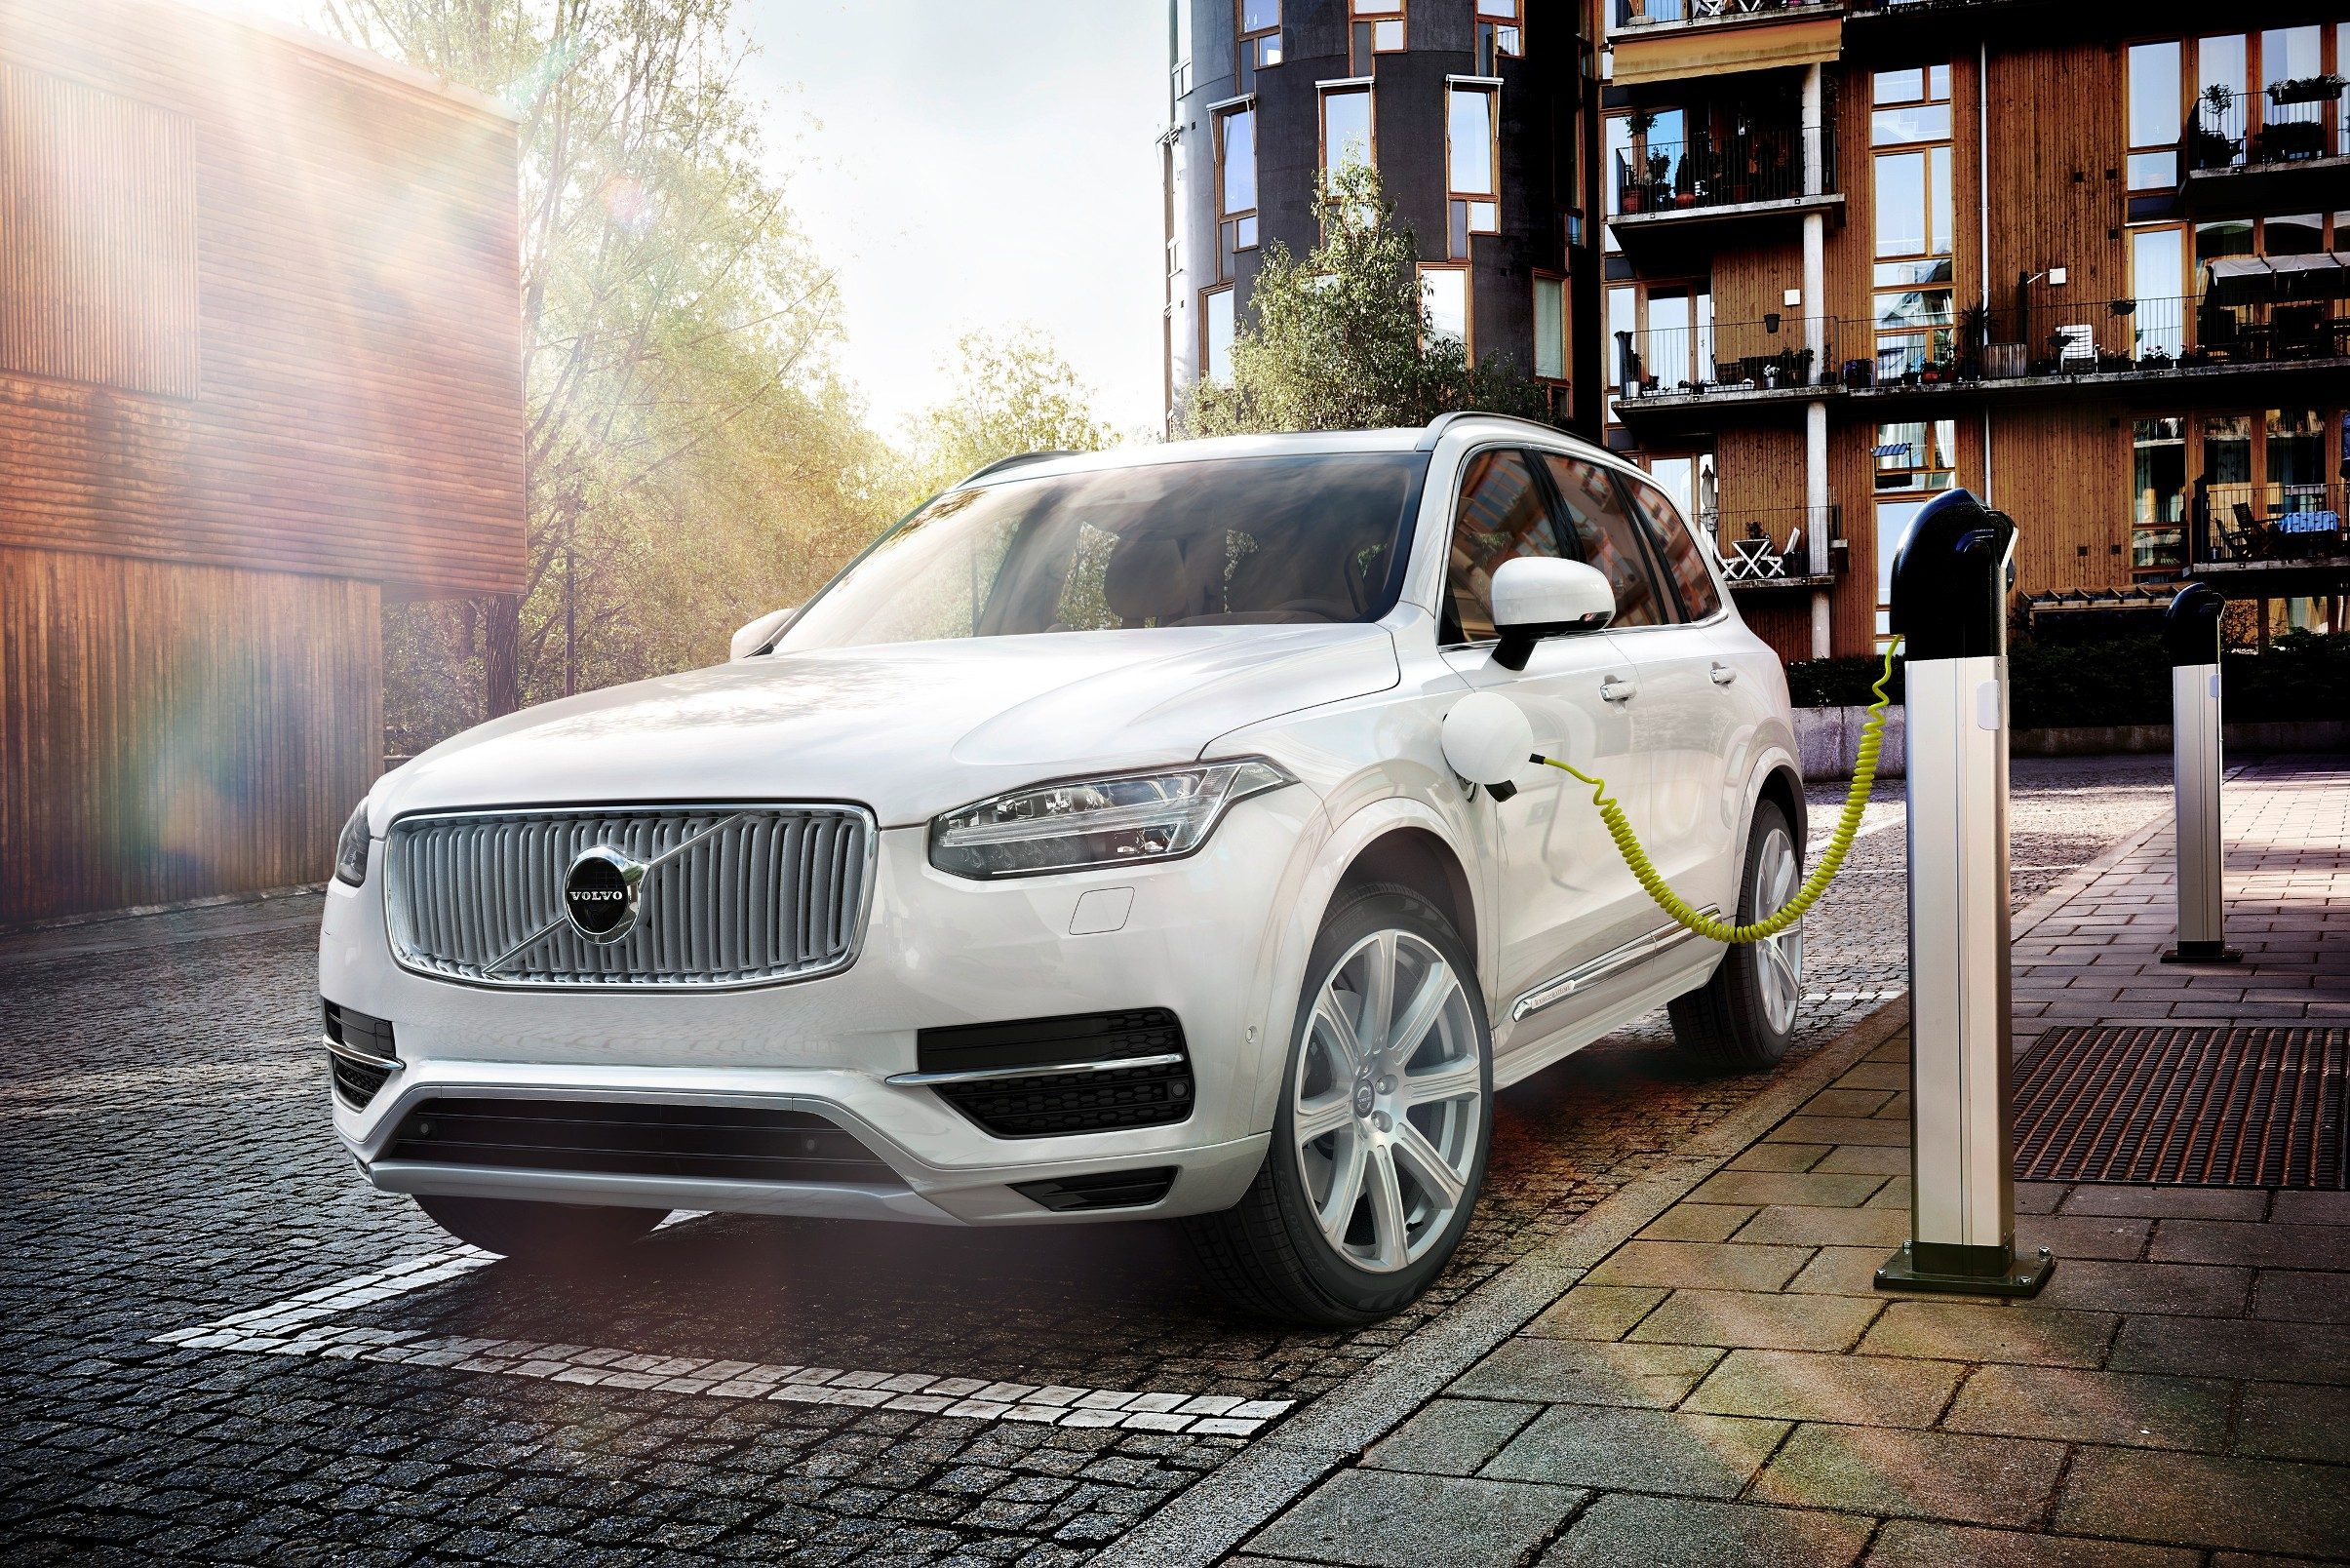 The new Volvo XC90 on charge